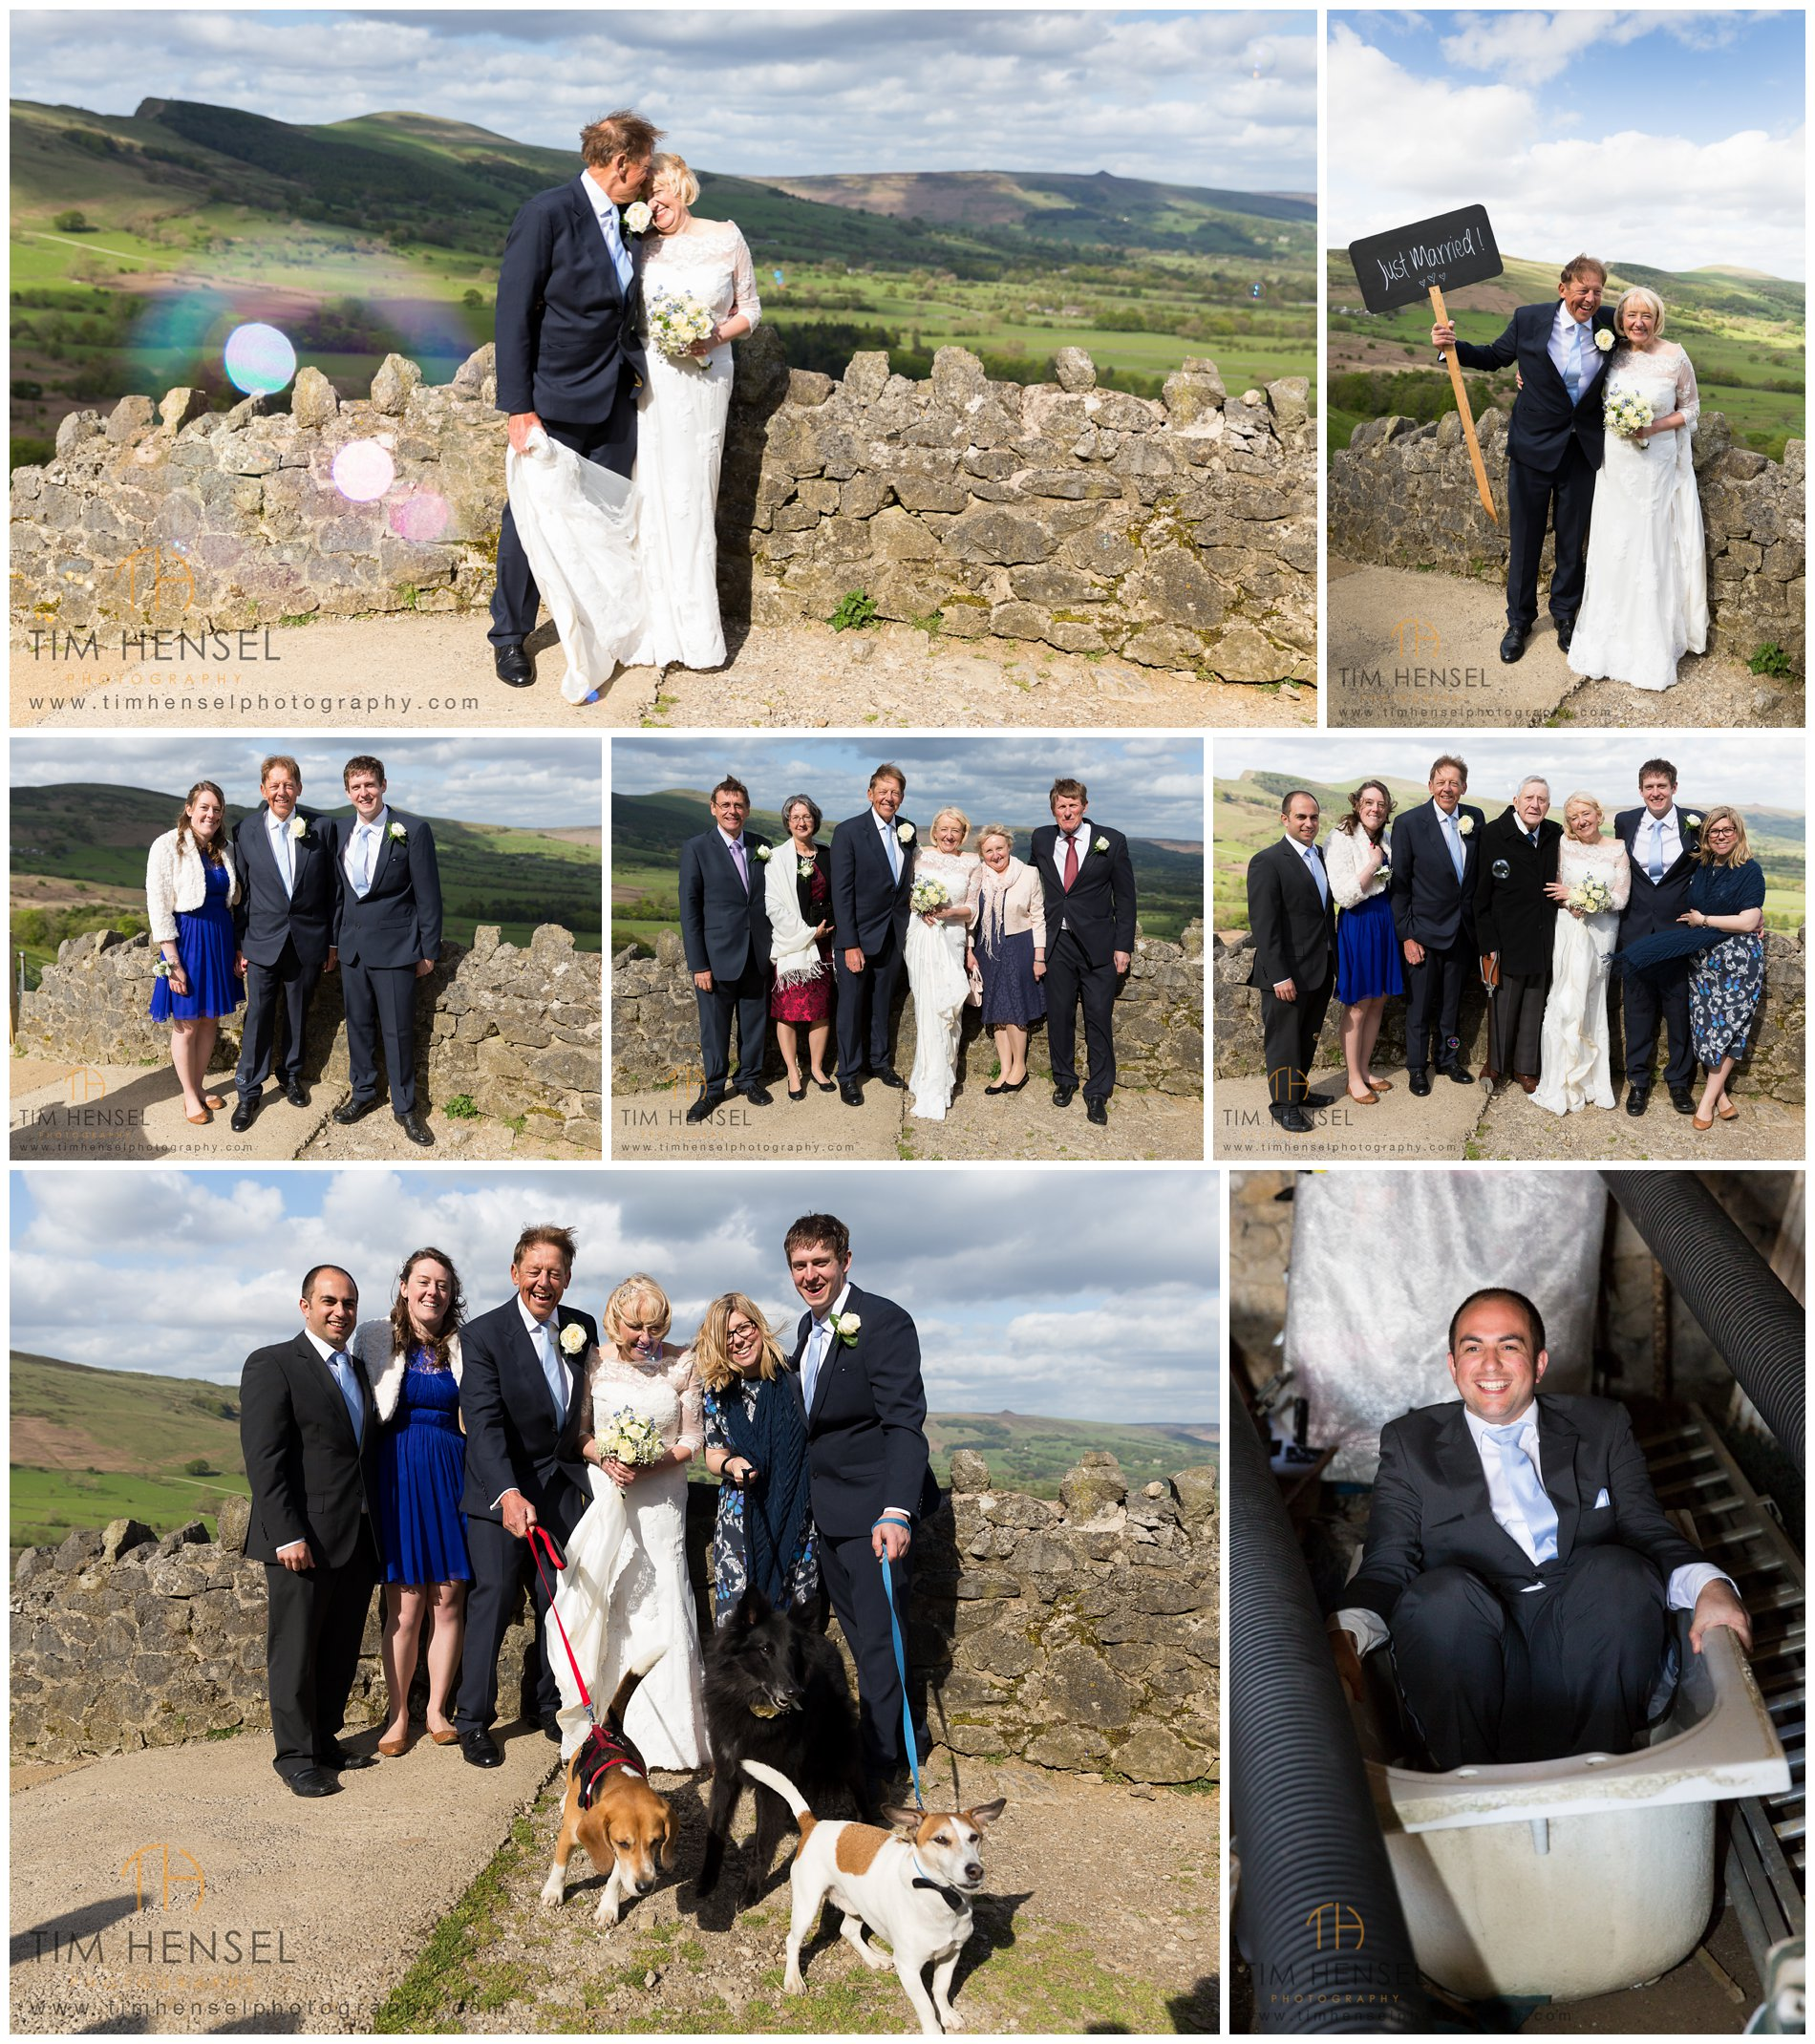 Creative wedding photography group photographs at Treak Cliff Cavern in Derbyshire